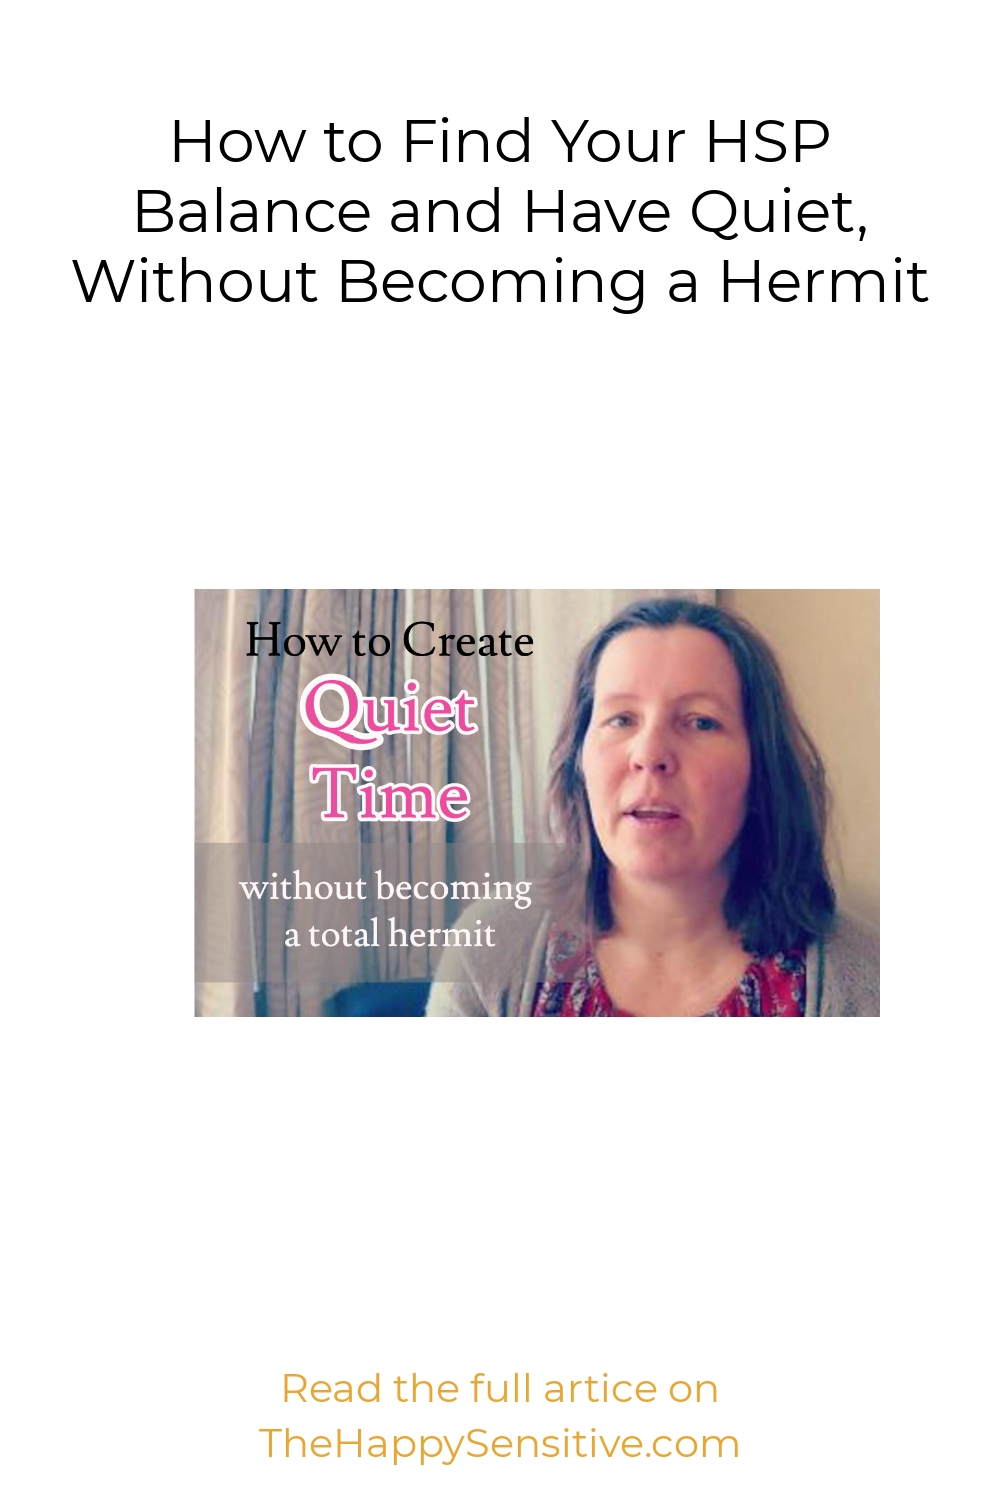 How to Find Your HSP Balance and Have Quiet, Without Becoming a Hermit